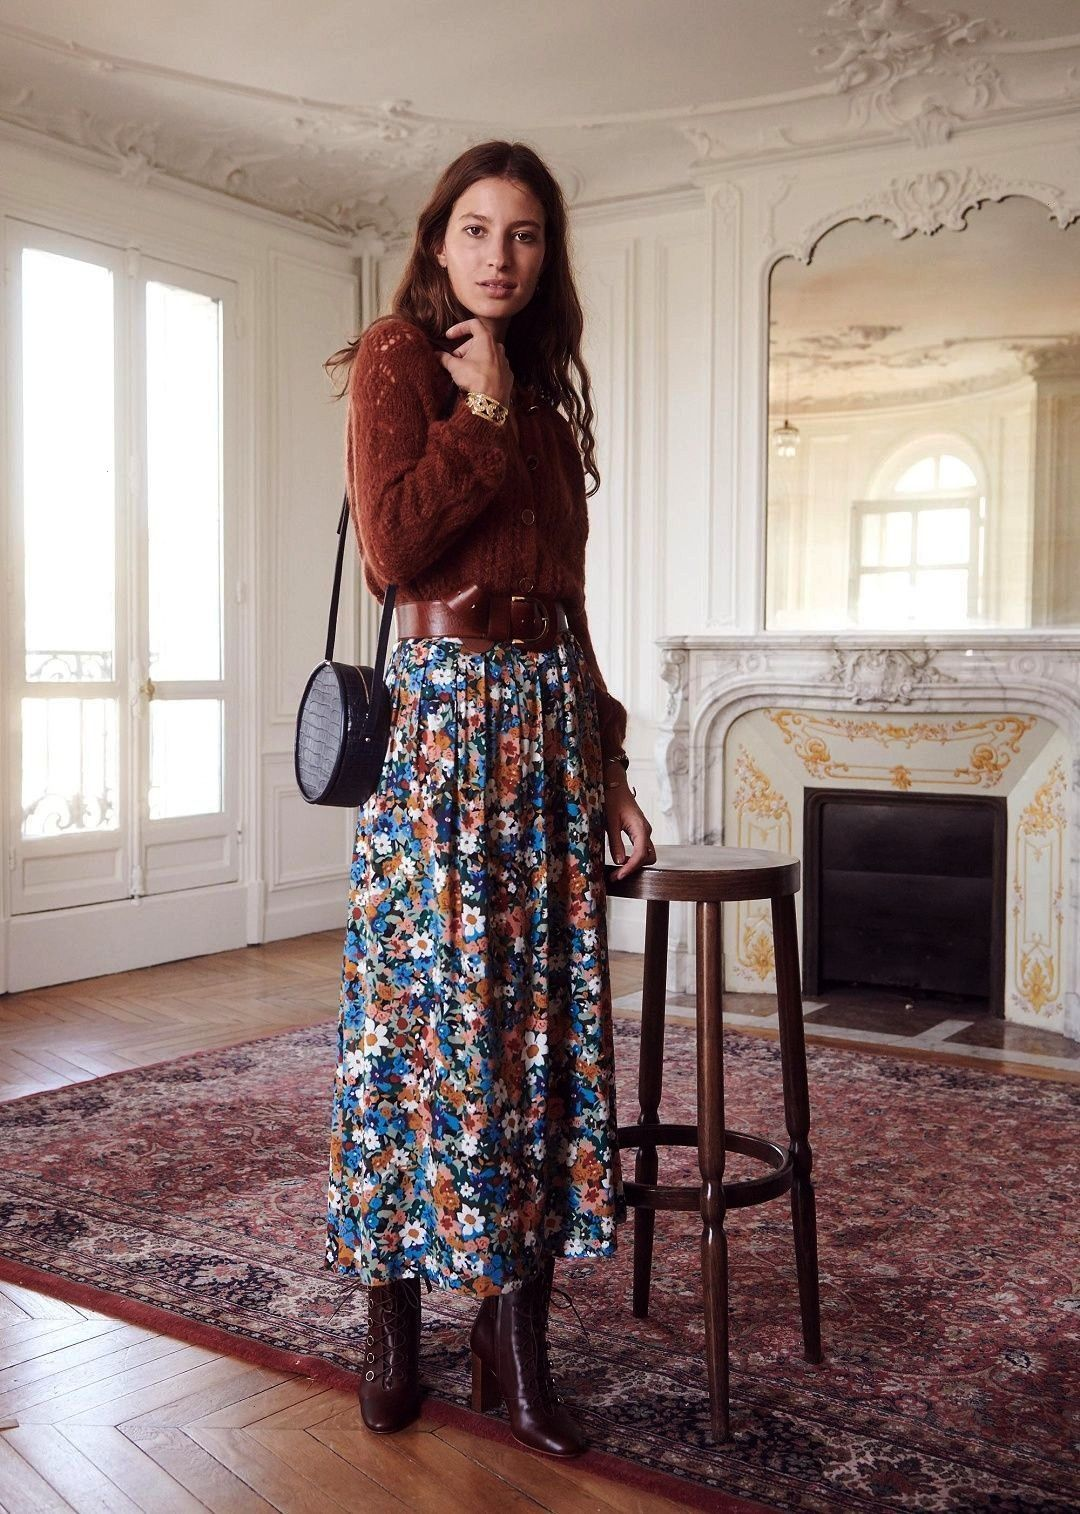 inspiration blogger automne hiver Be Badass II Blogging Lifestyle Mode Marketing Entre Source by mrissa303 outfits modestidées inspiration blogger automne hiver Be...